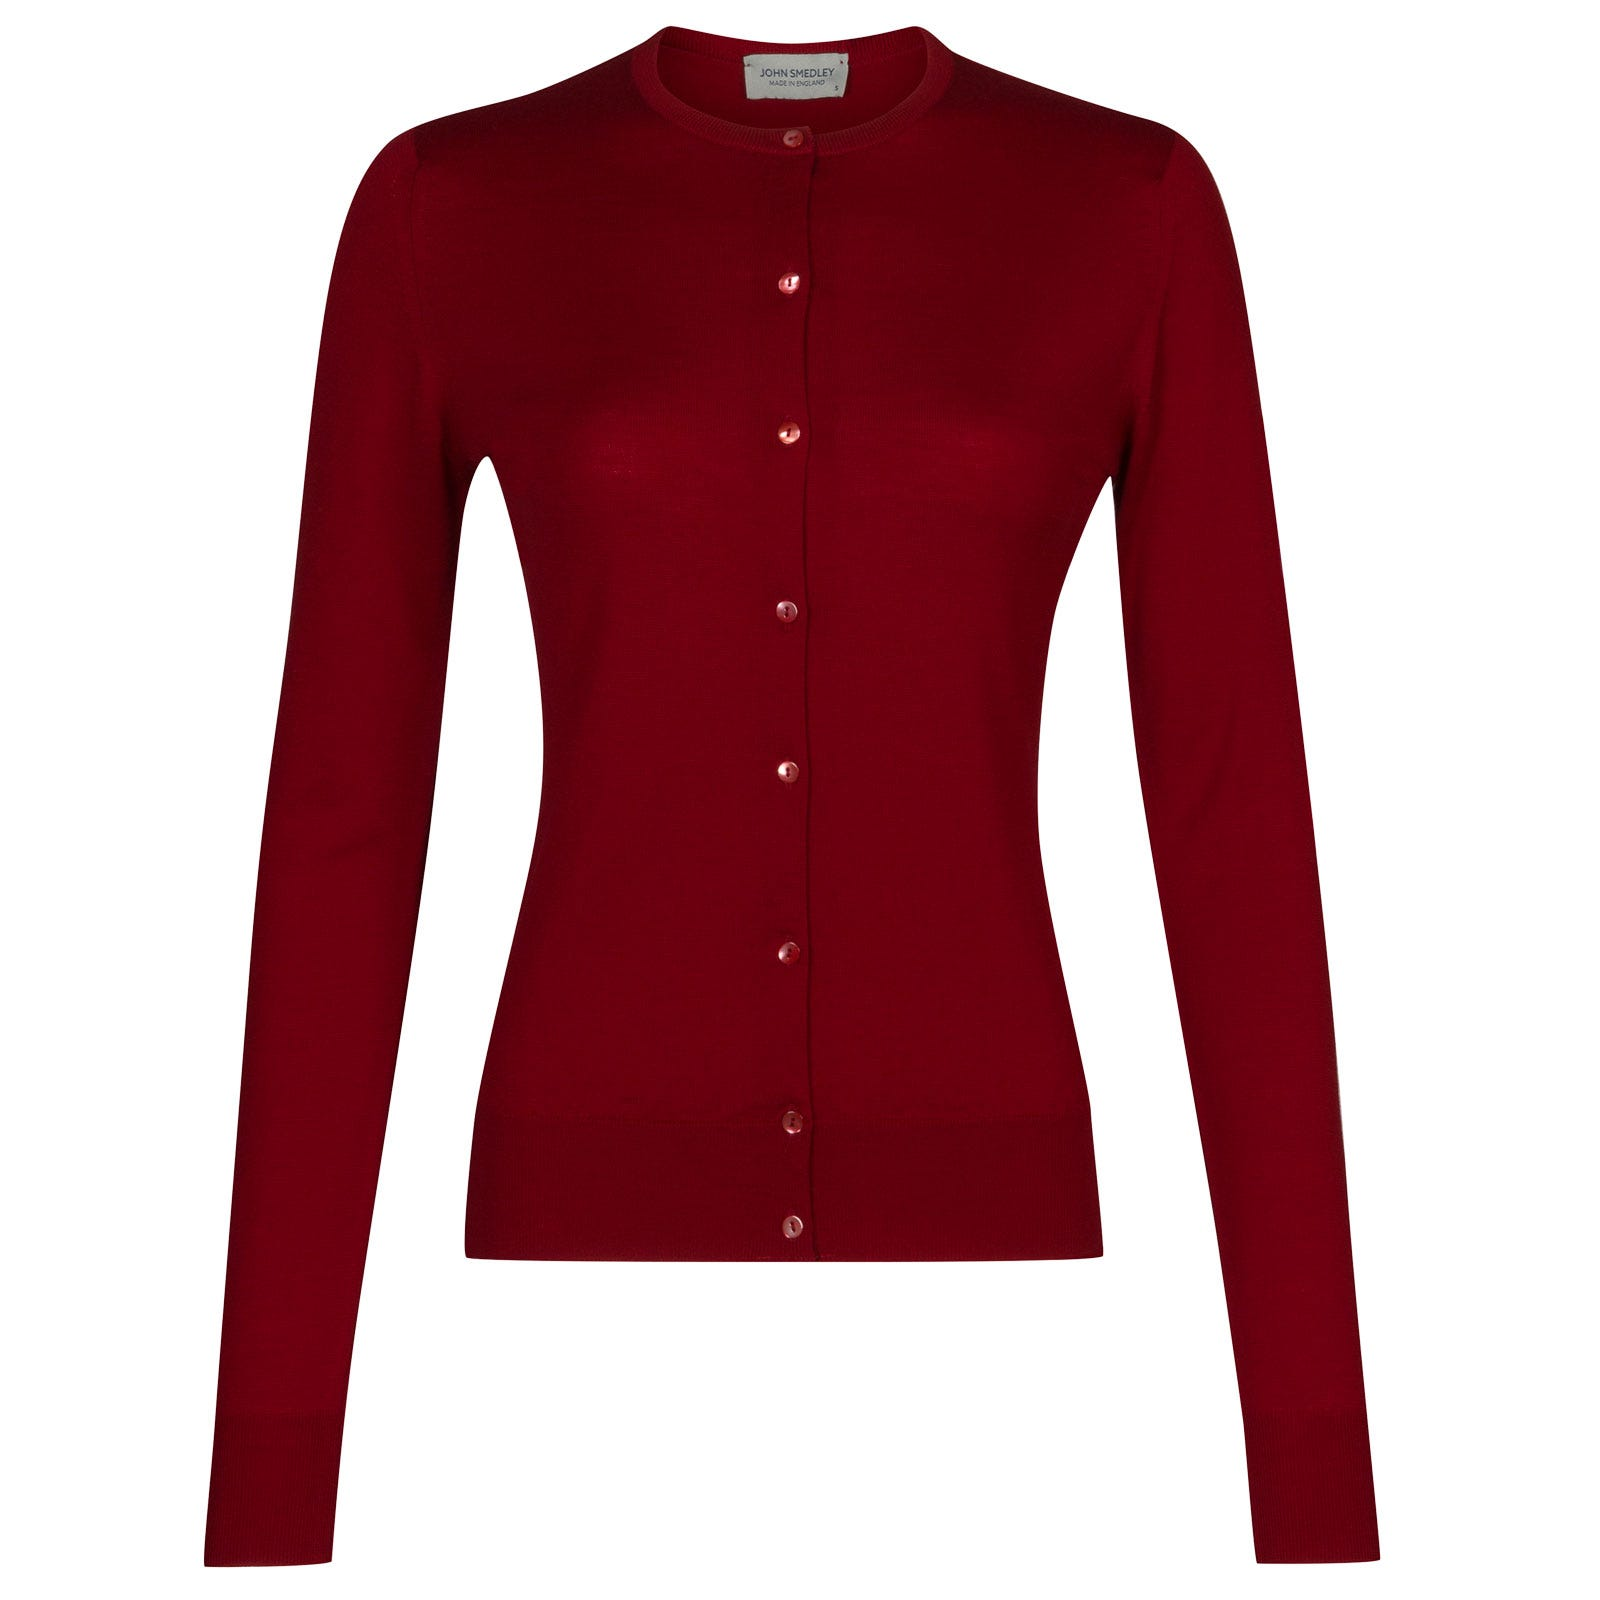 John Smedley pansy Merino Wool Cardigan in Crimson Forest-M